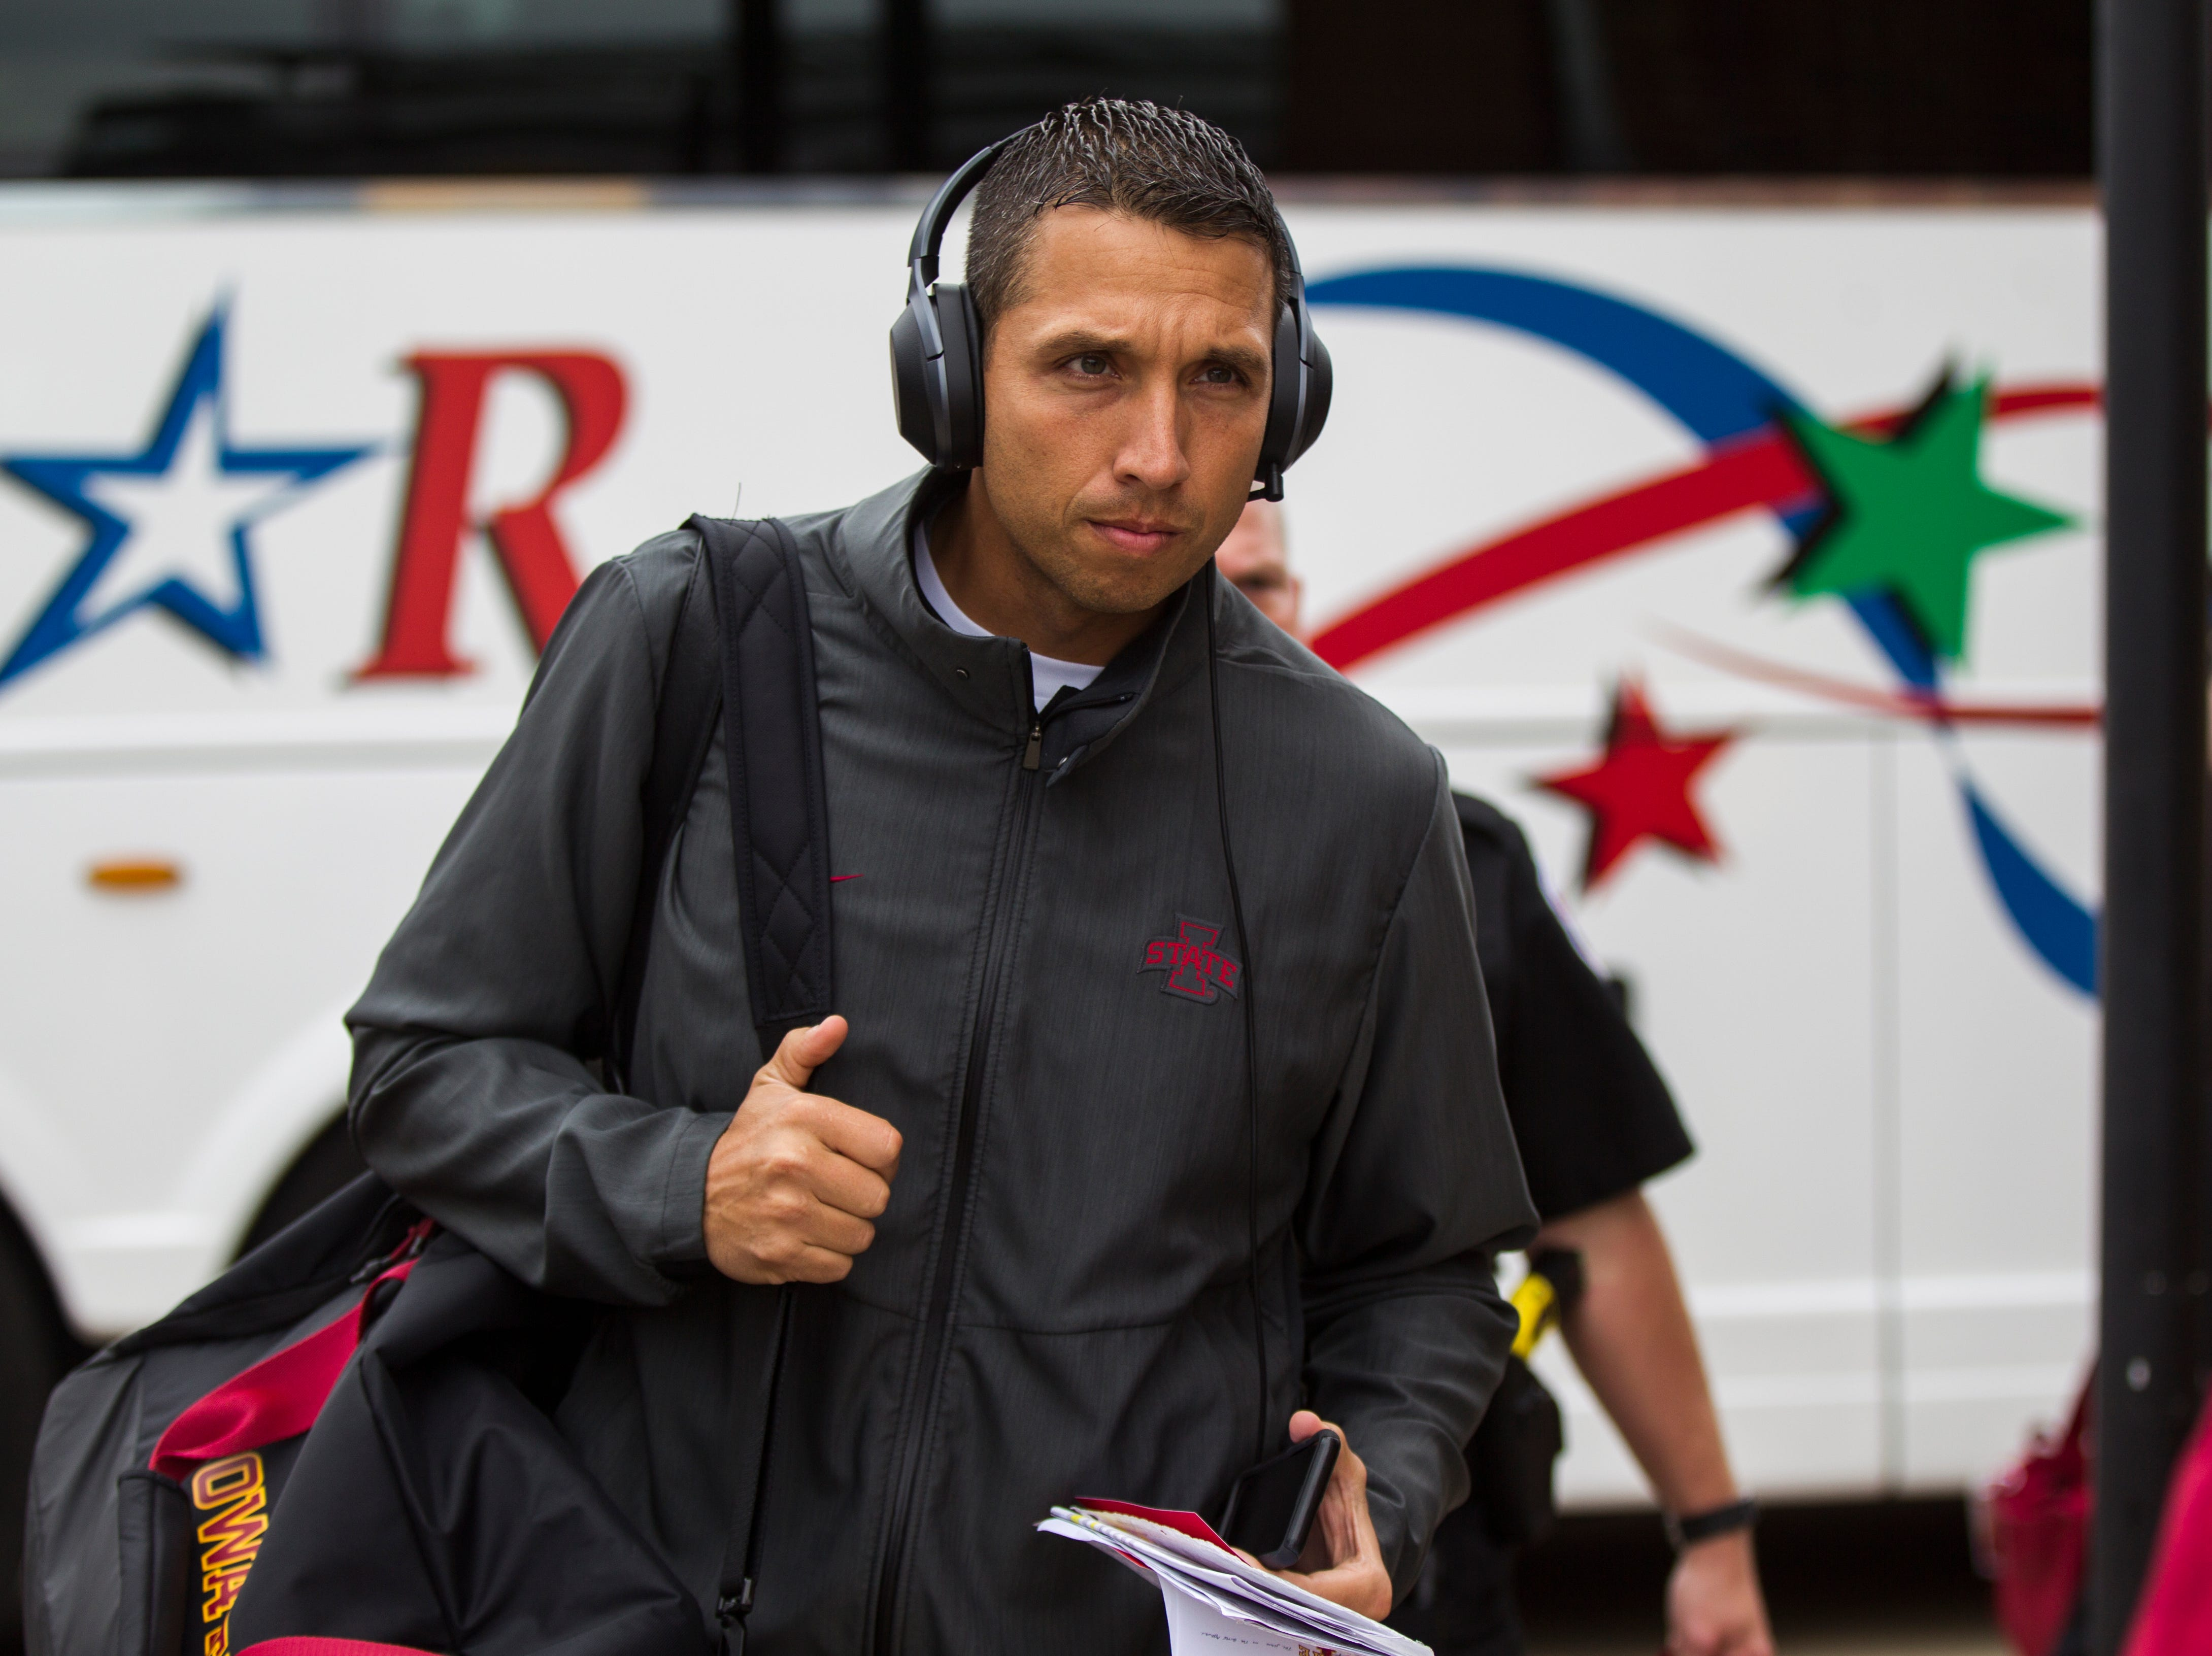 Iowa State head coach Matt Campbell walks into the stadium before the Cy-Hawk NCAA football game on Saturday, Sept. 8, 2018, at Kinnick Stadium in Iowa City.